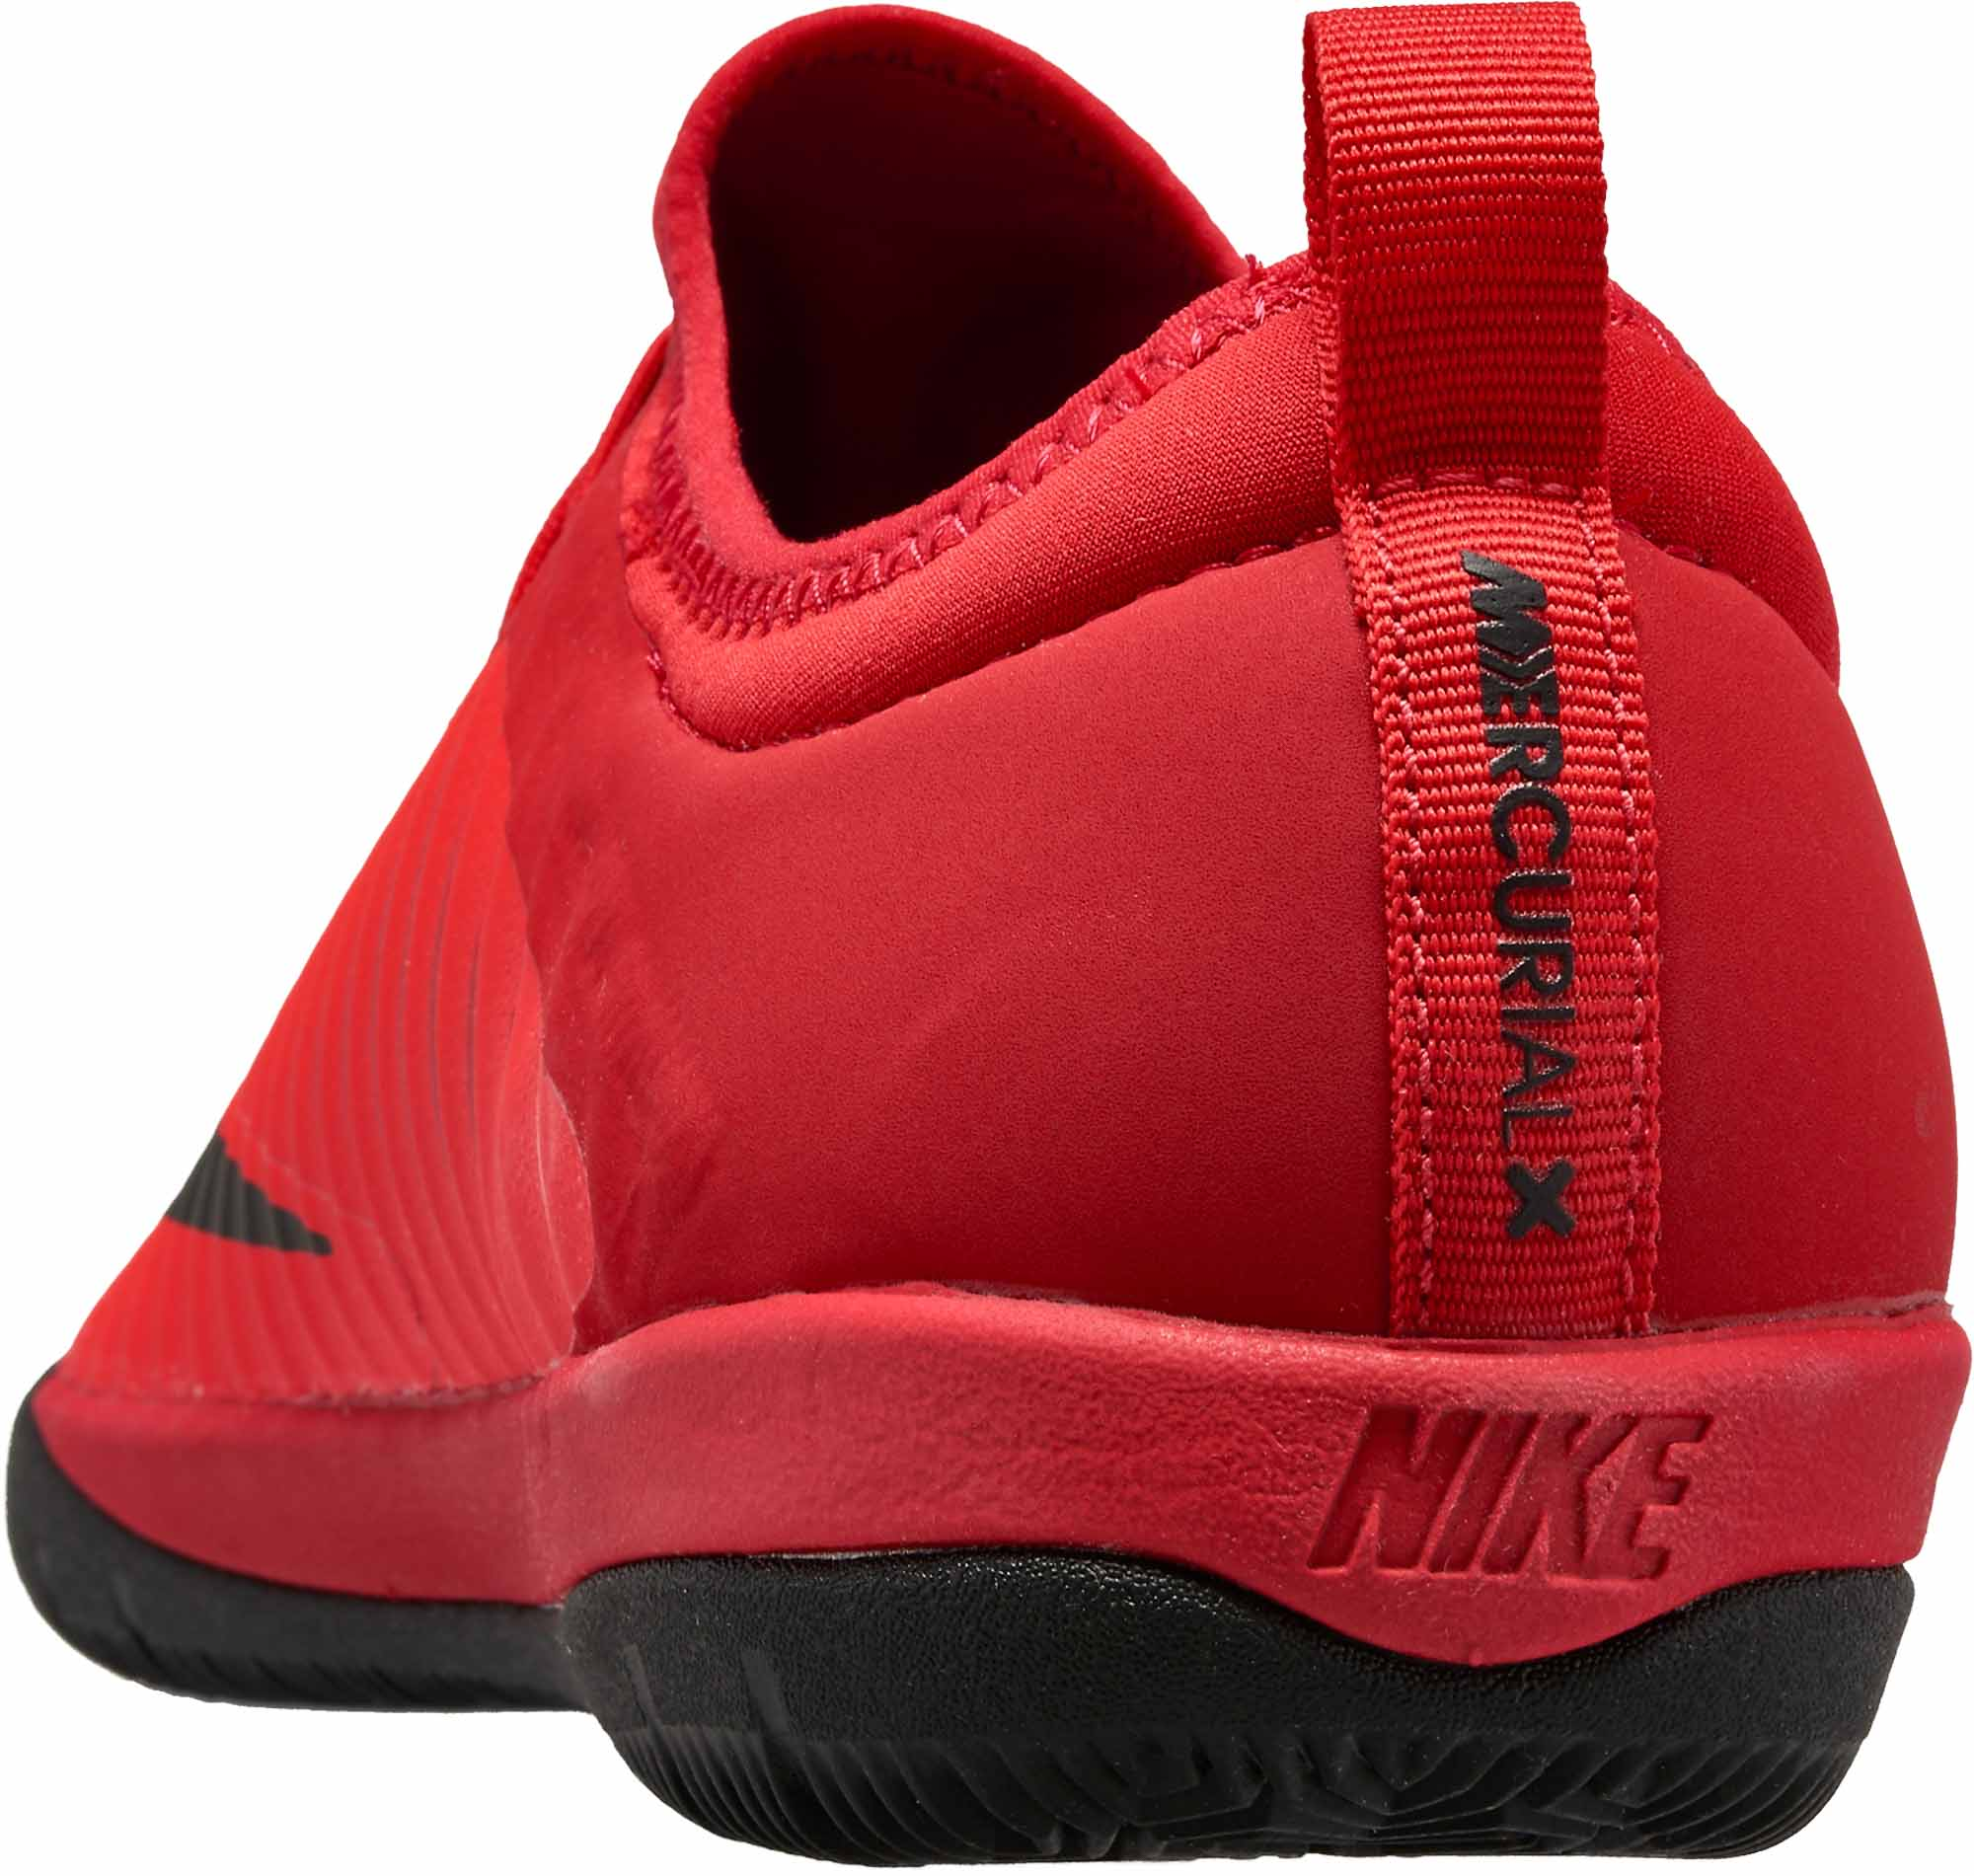 brand new 329fe 33e87 Nike MercurialX Finale II IC - Red Indoor Soccer Shoes